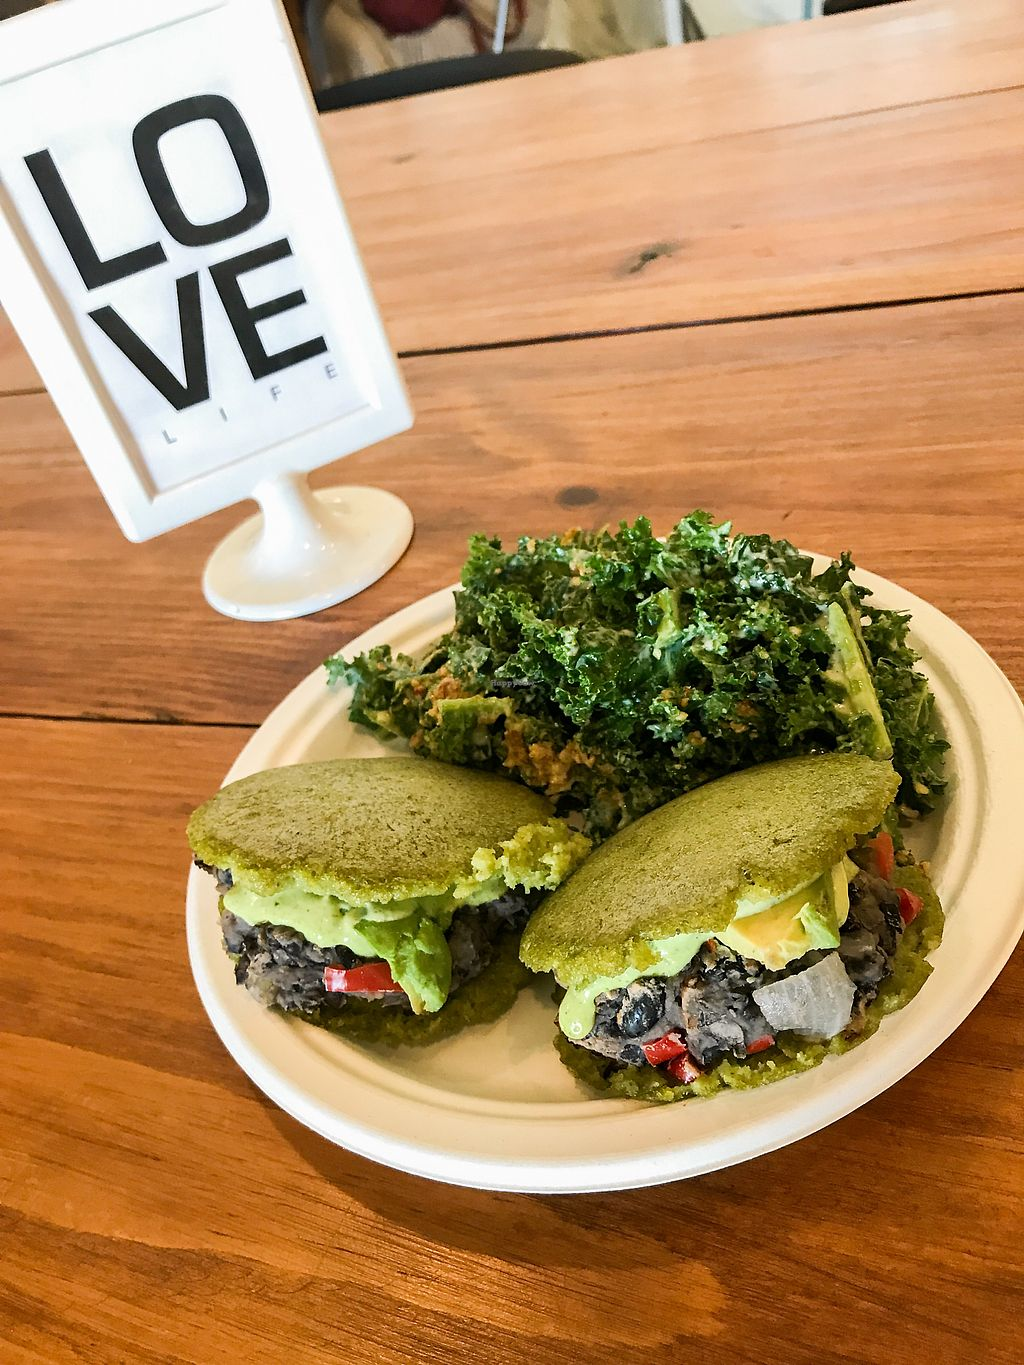 "Photo of Love Life Wellness Center & Cafe  by <a href=""/members/profile/Bono17"">Bono17</a> <br/>plant powered arepas!  <br/> August 10, 2017  - <a href='/contact/abuse/image/65465/291281'>Report</a>"